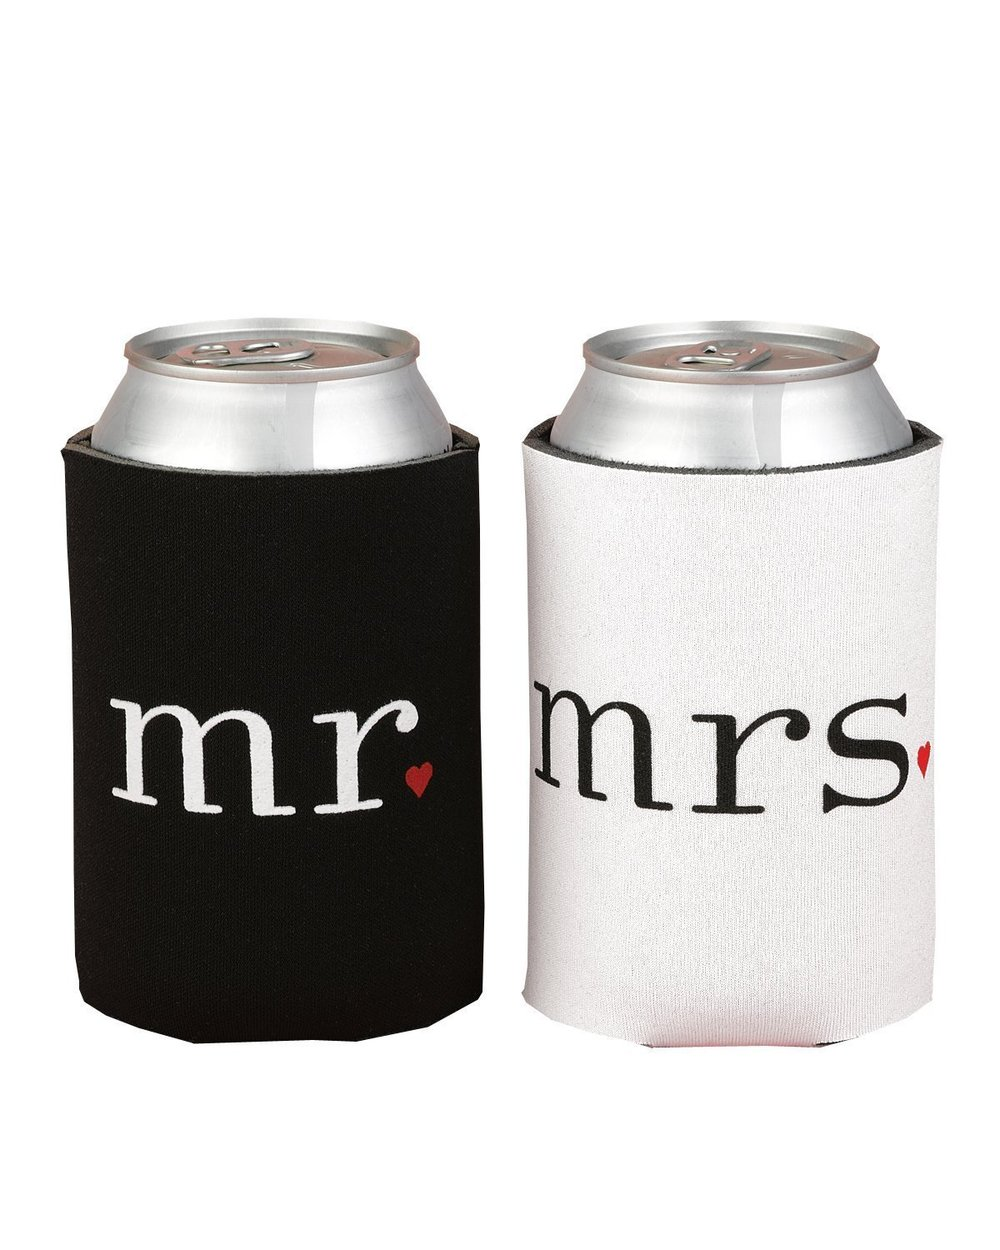 Spring Rose(TM) Wedding Accessories Mr. and Mrs. Can Coolers Gift Set. These Are The Perfect Present For Newlyweds Or For An Anniversary Couple..jpg